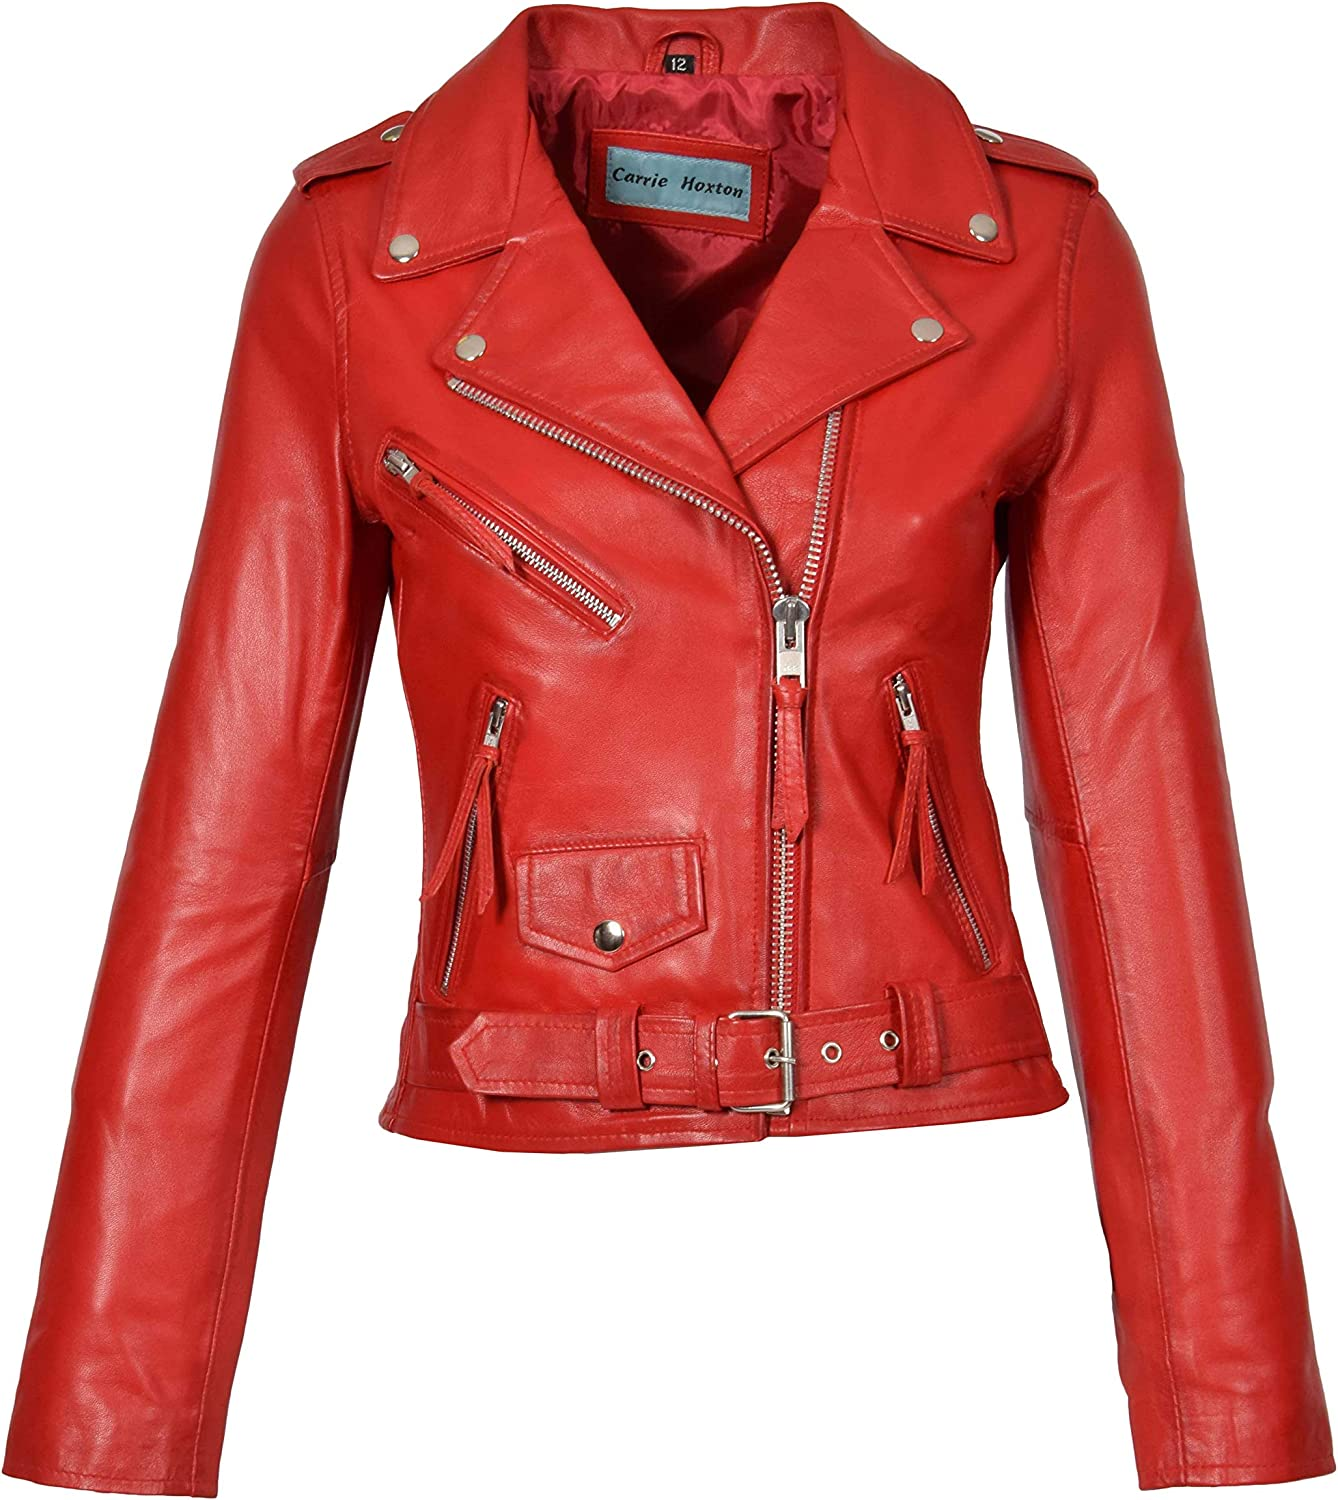 A1 FASHION GOODS Womens Red Leather Biker Style Jacket Girls XZip Fitted Coat Garnet